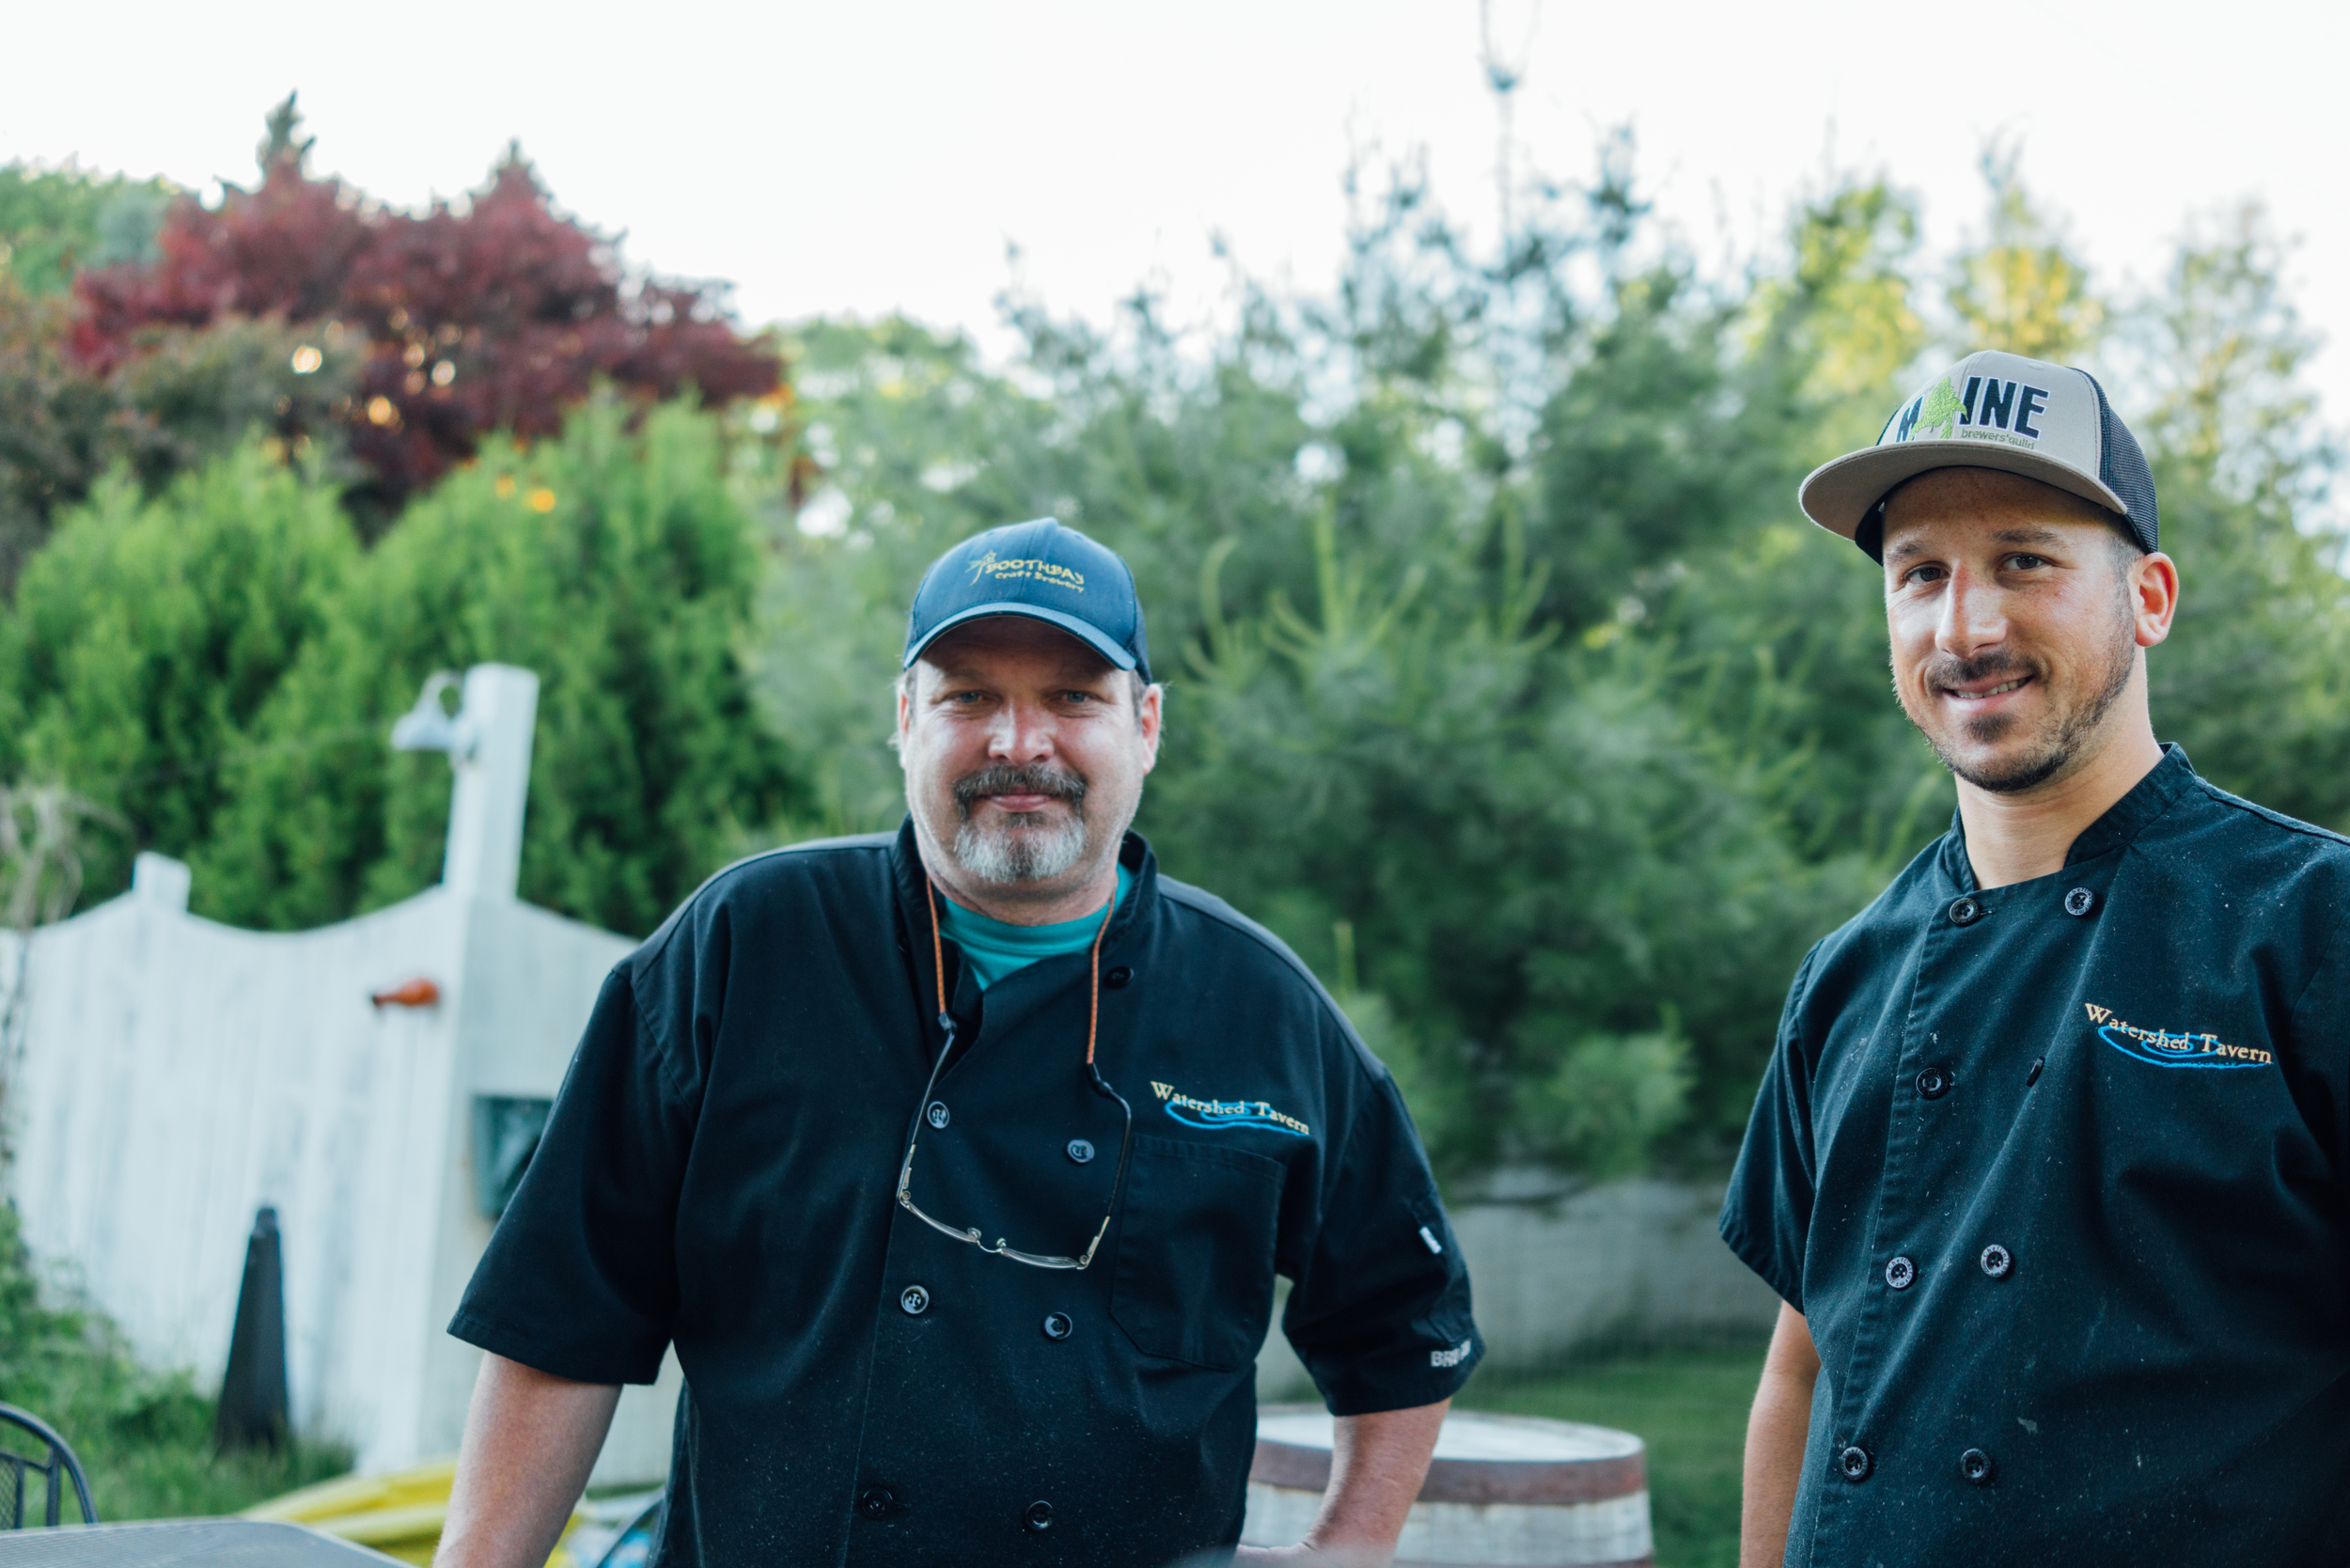 Jeff, head chef, and Max, sous chef, at Watershed Tavern, the restaurant attached to Boothbay Craft Brewery